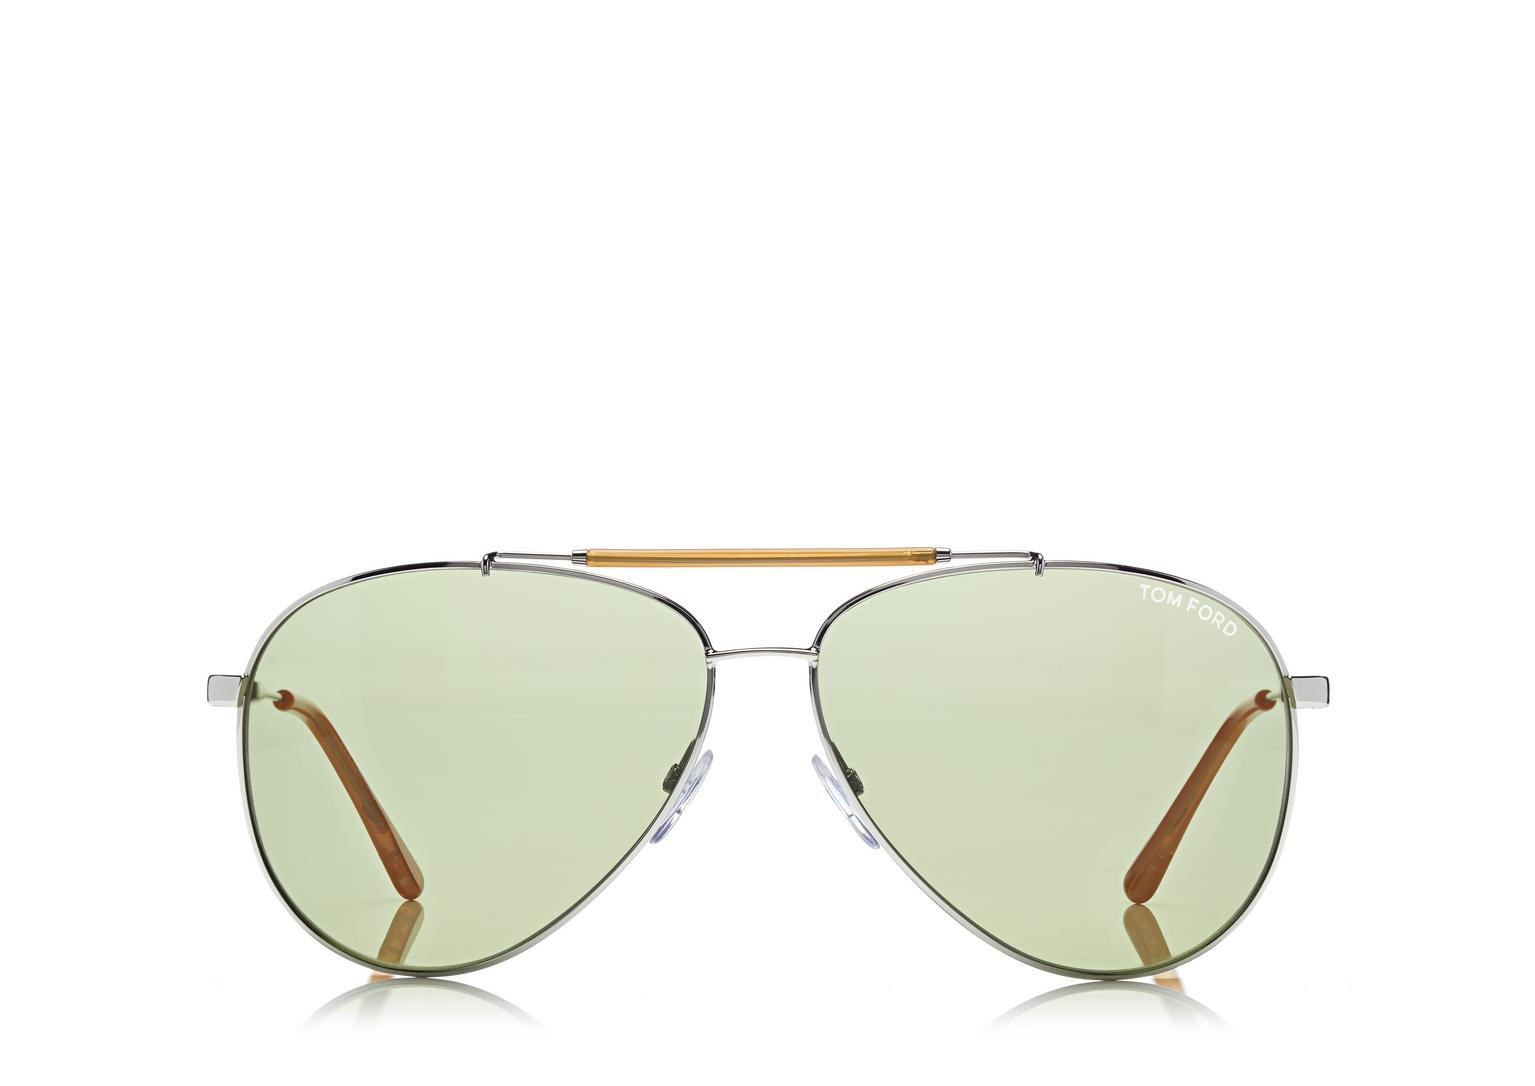 Tom Ford Rick Aviator Sunglasses in Light Ruthenium